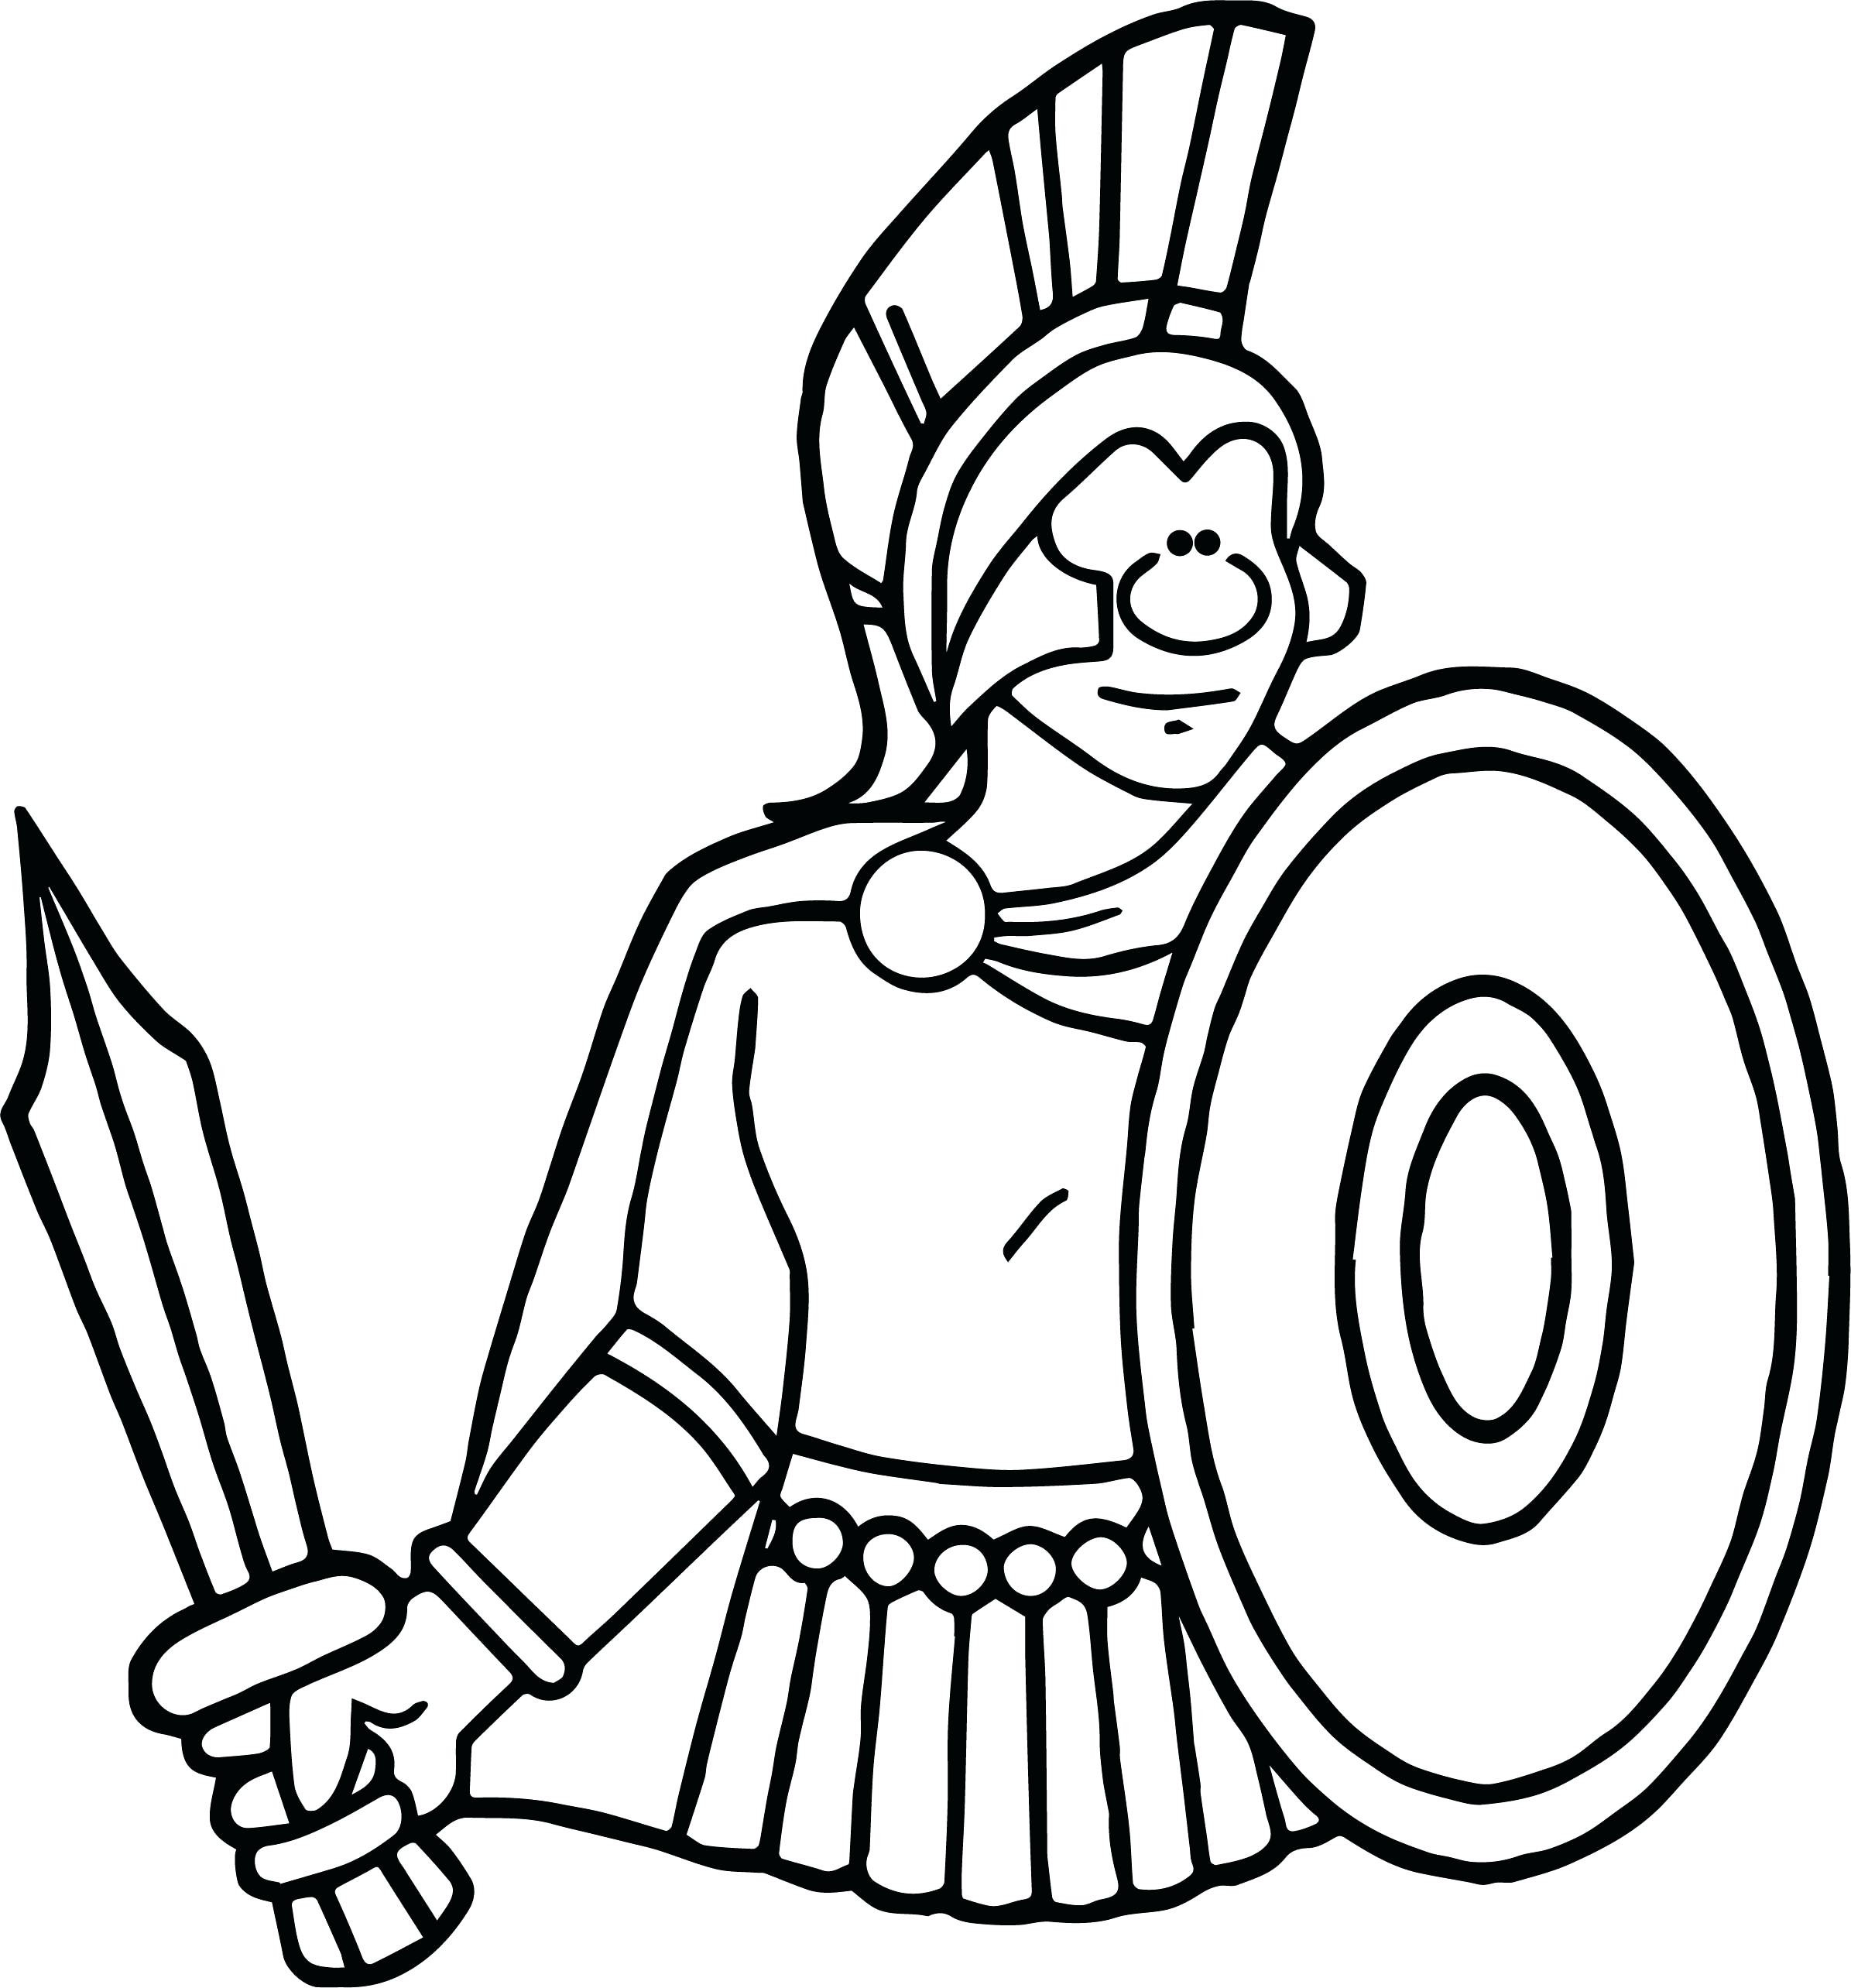 2391x2568 Startling Spartan Warrior Coloring Pages Helmet Drawing